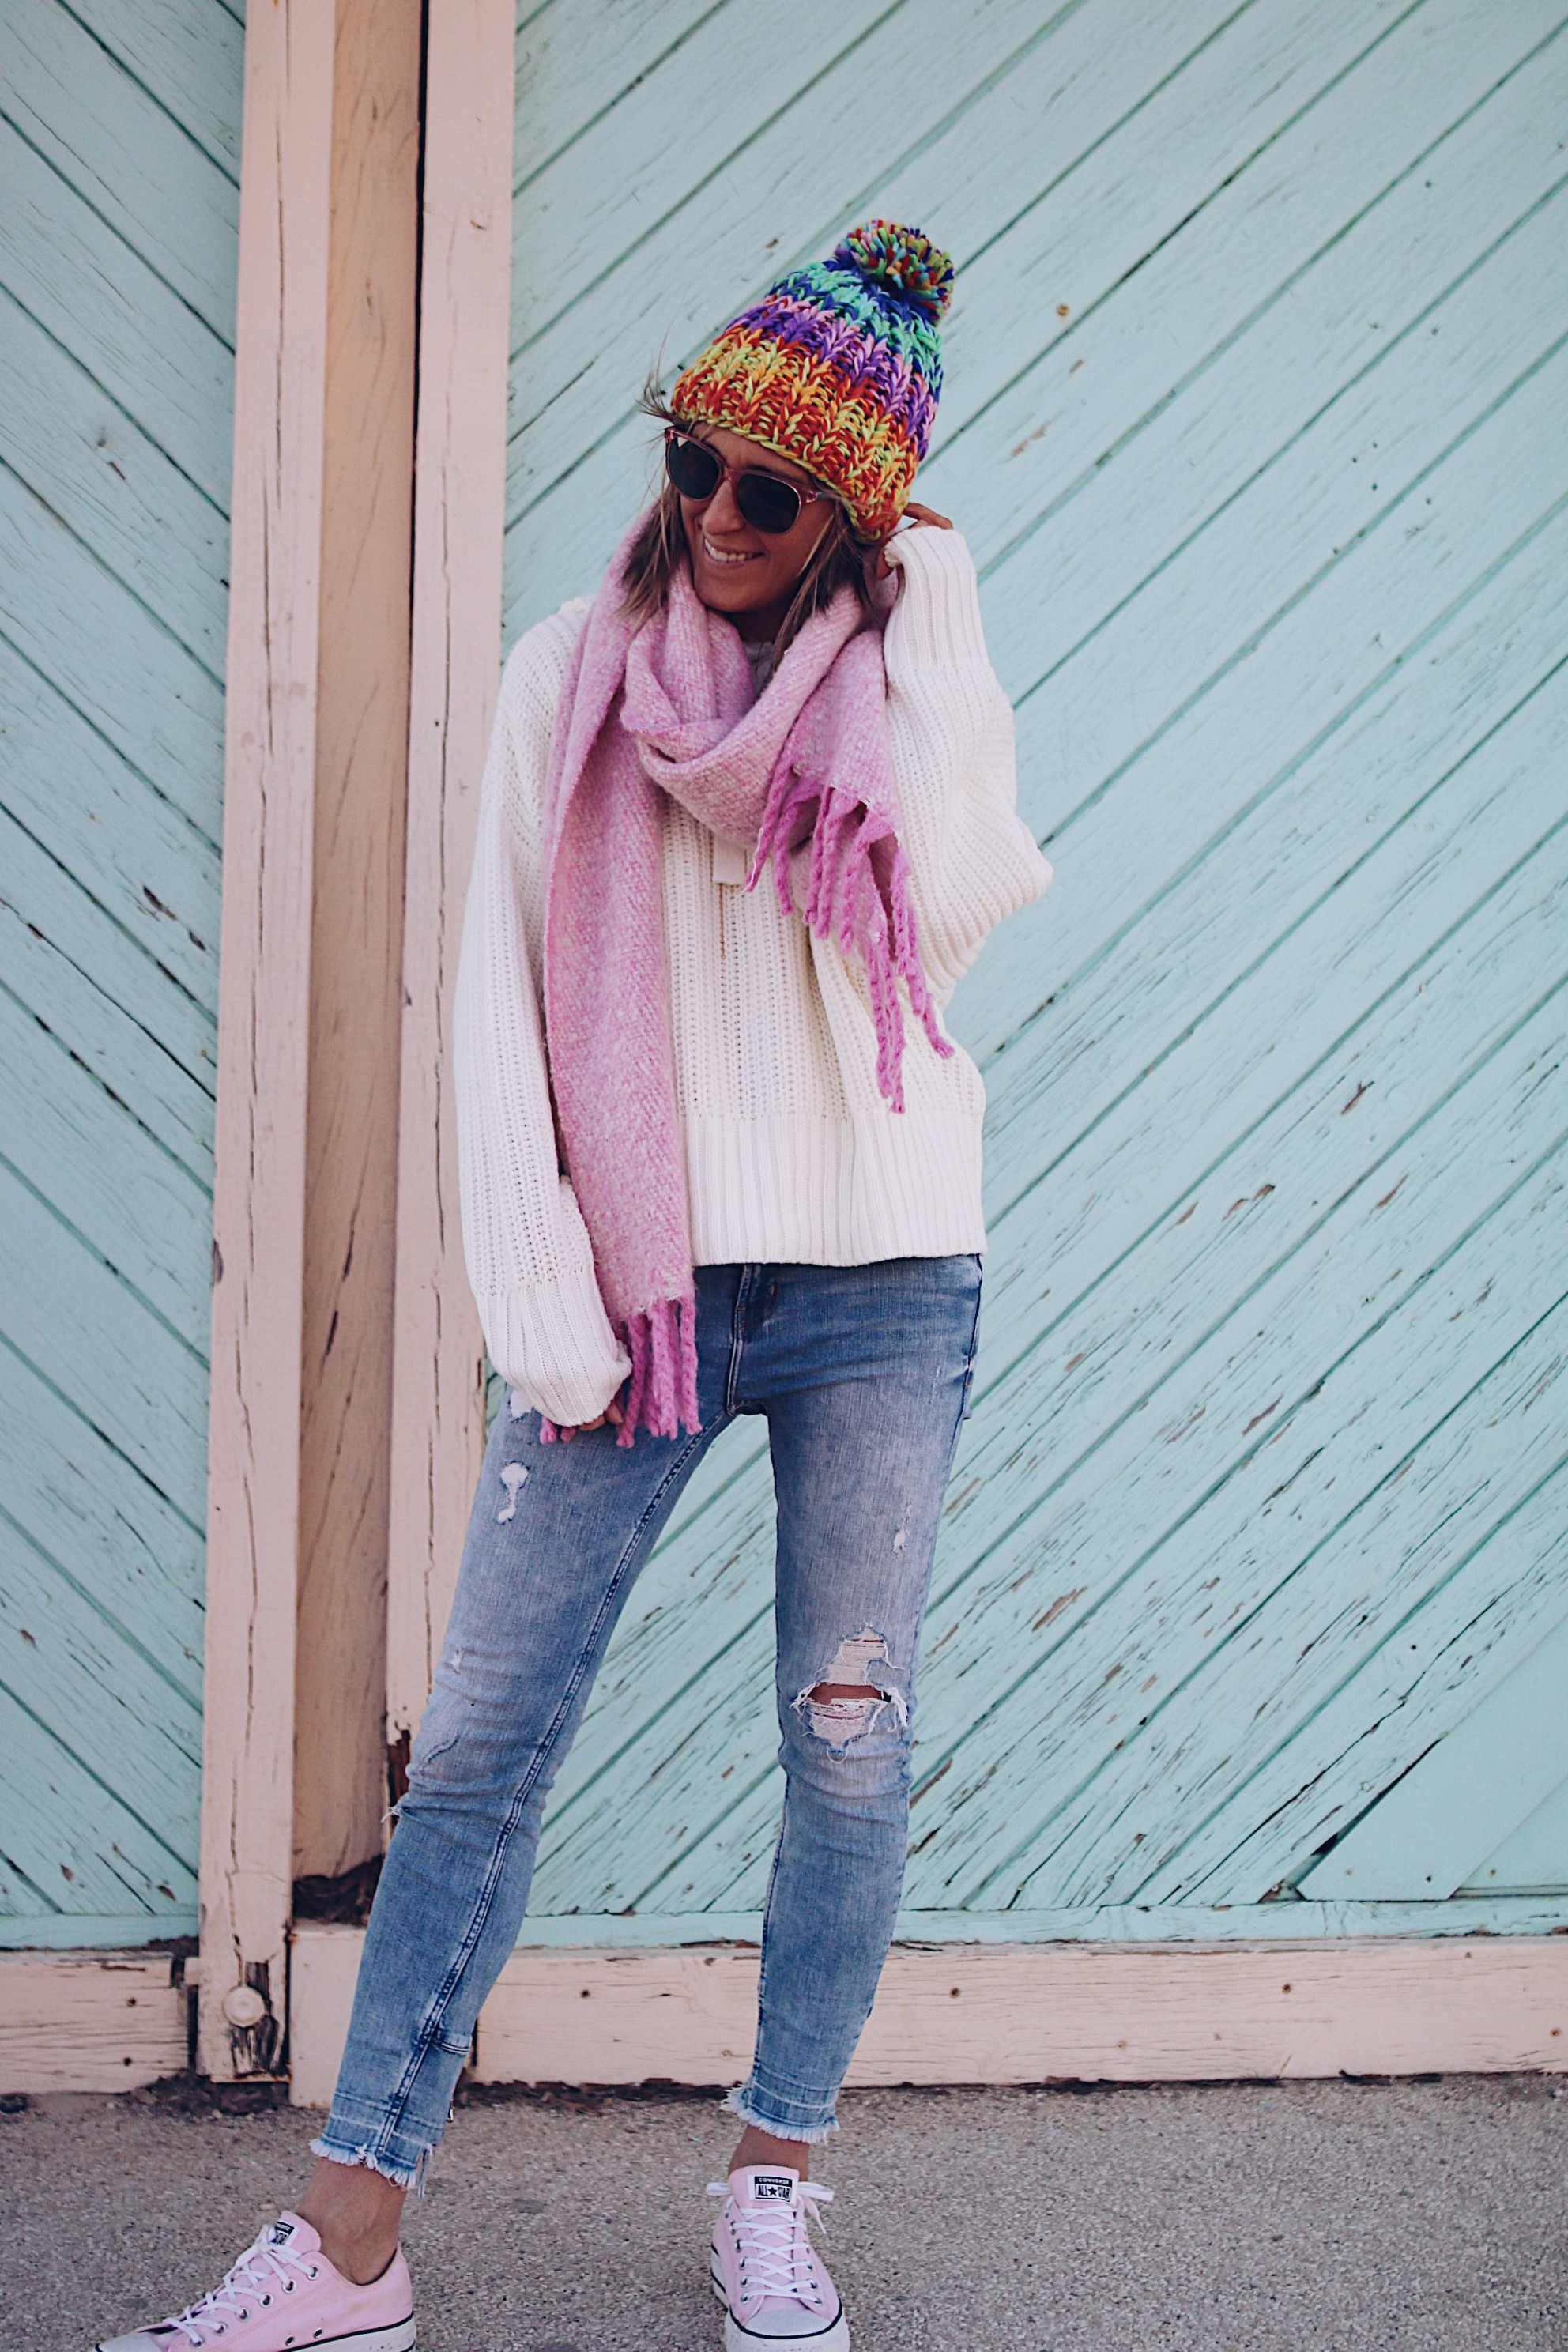 COLORFUL - Chon & HON - www.chonandchon.com - colorful beannie and denim, casula style, fashib lobbe, pink scarf, grosse écharpe rose laine oversize